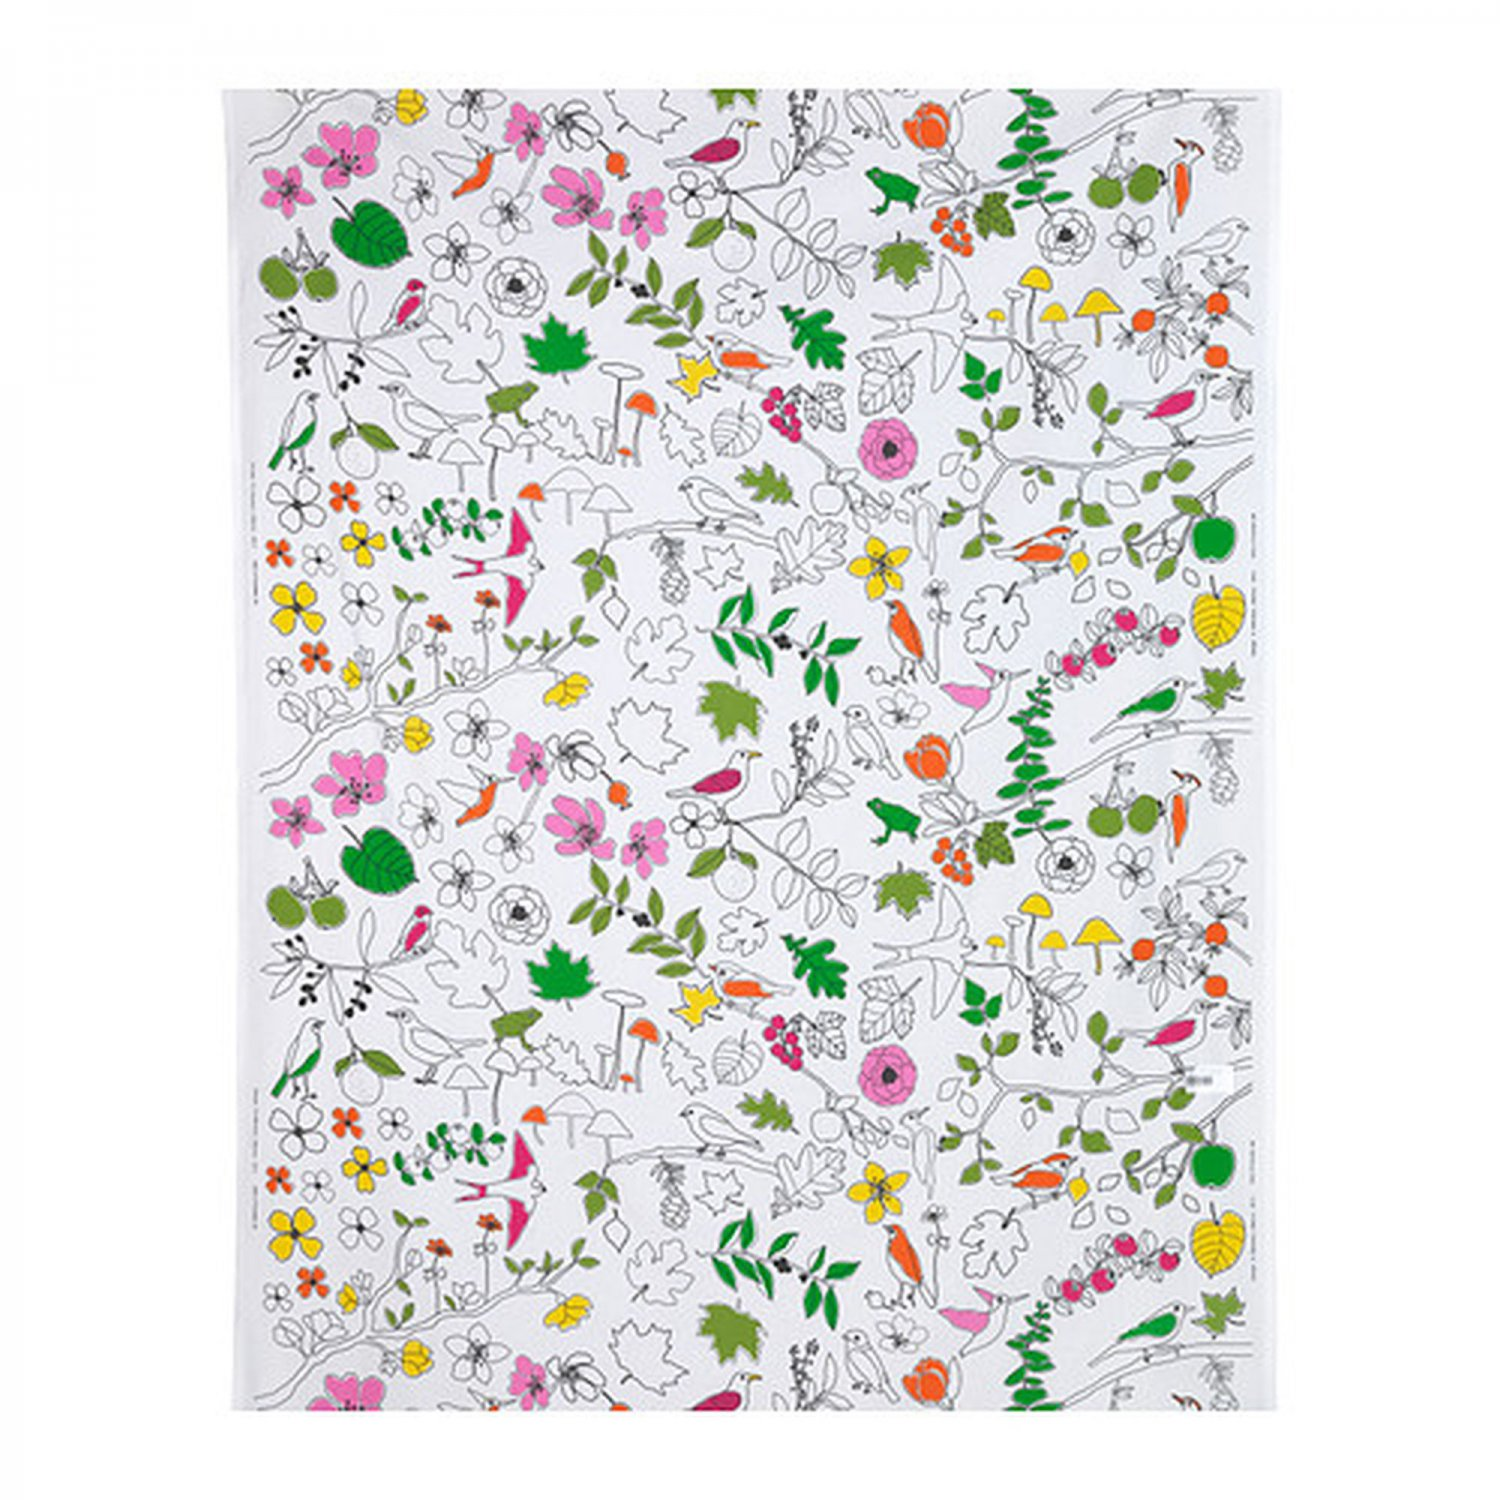 IKEA LUDOVIKA Fabric Material BIRDS Flowers Trees Frogs Meadow PINK Orange Green White